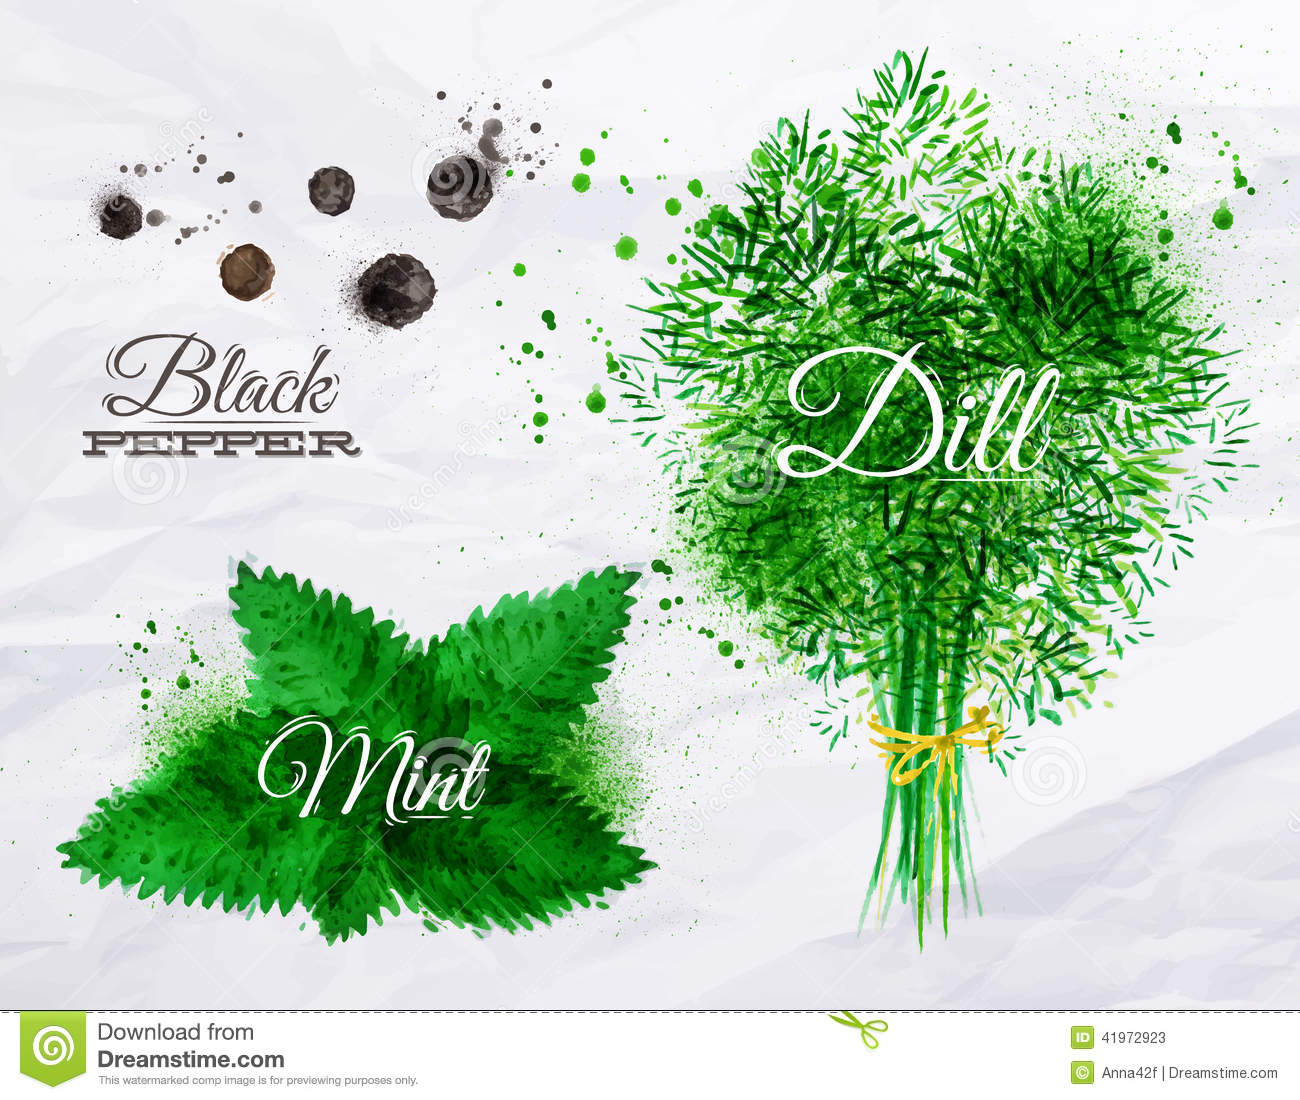 Spices herbs watercolor black pepper, mint, dill